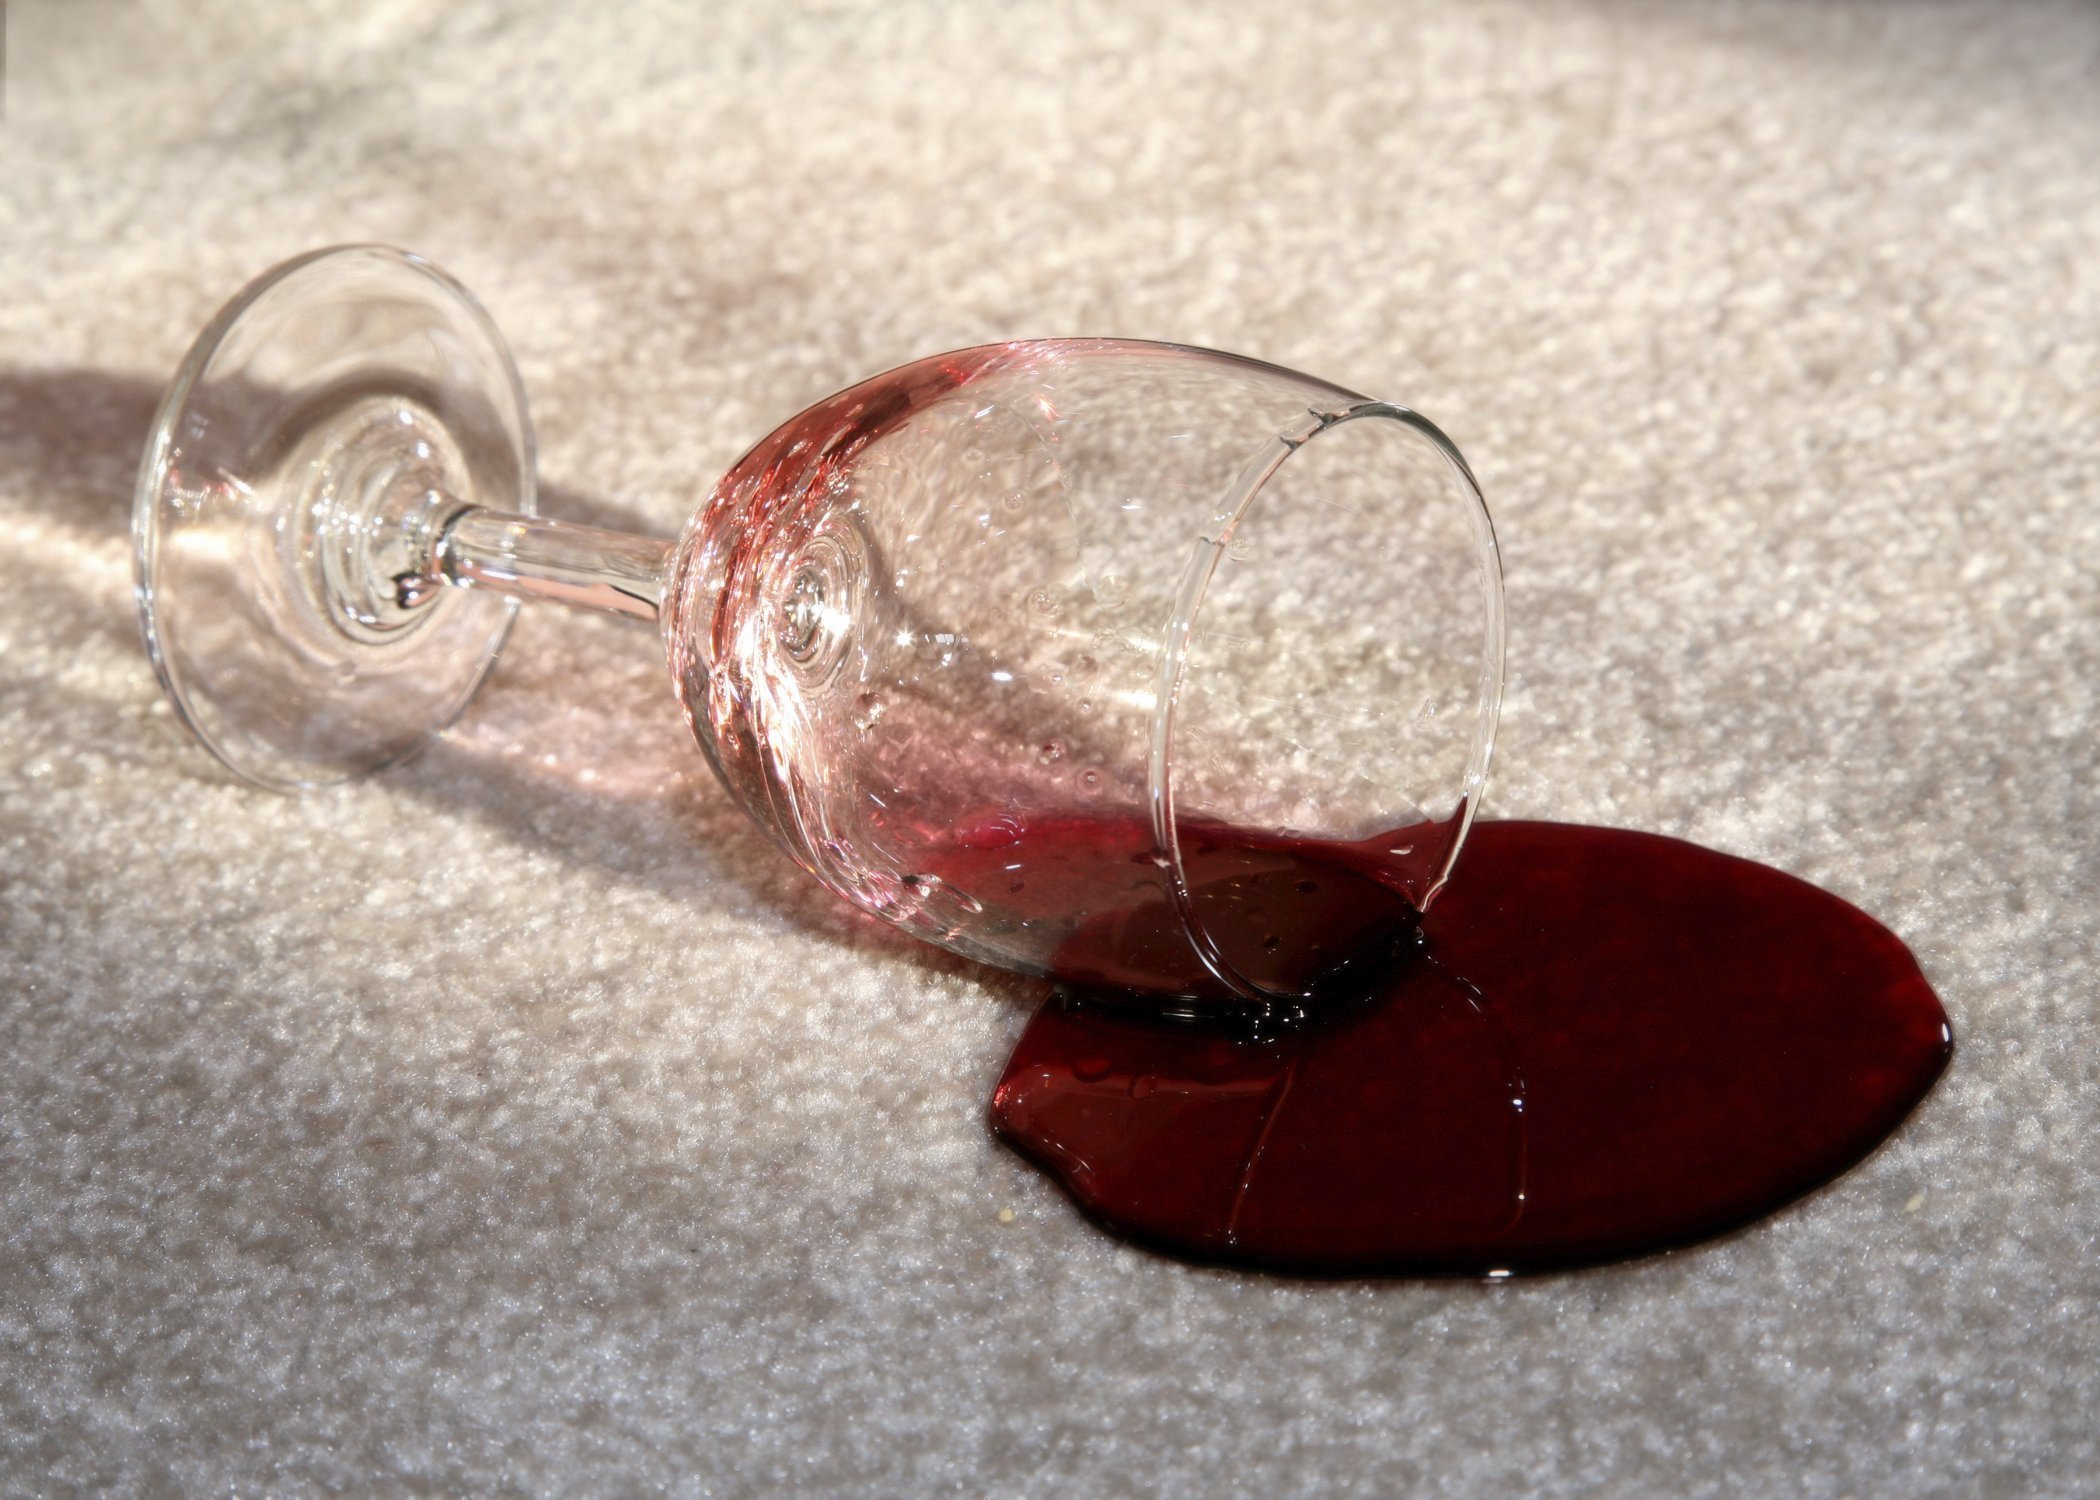 spilled glass of wine on a carpet